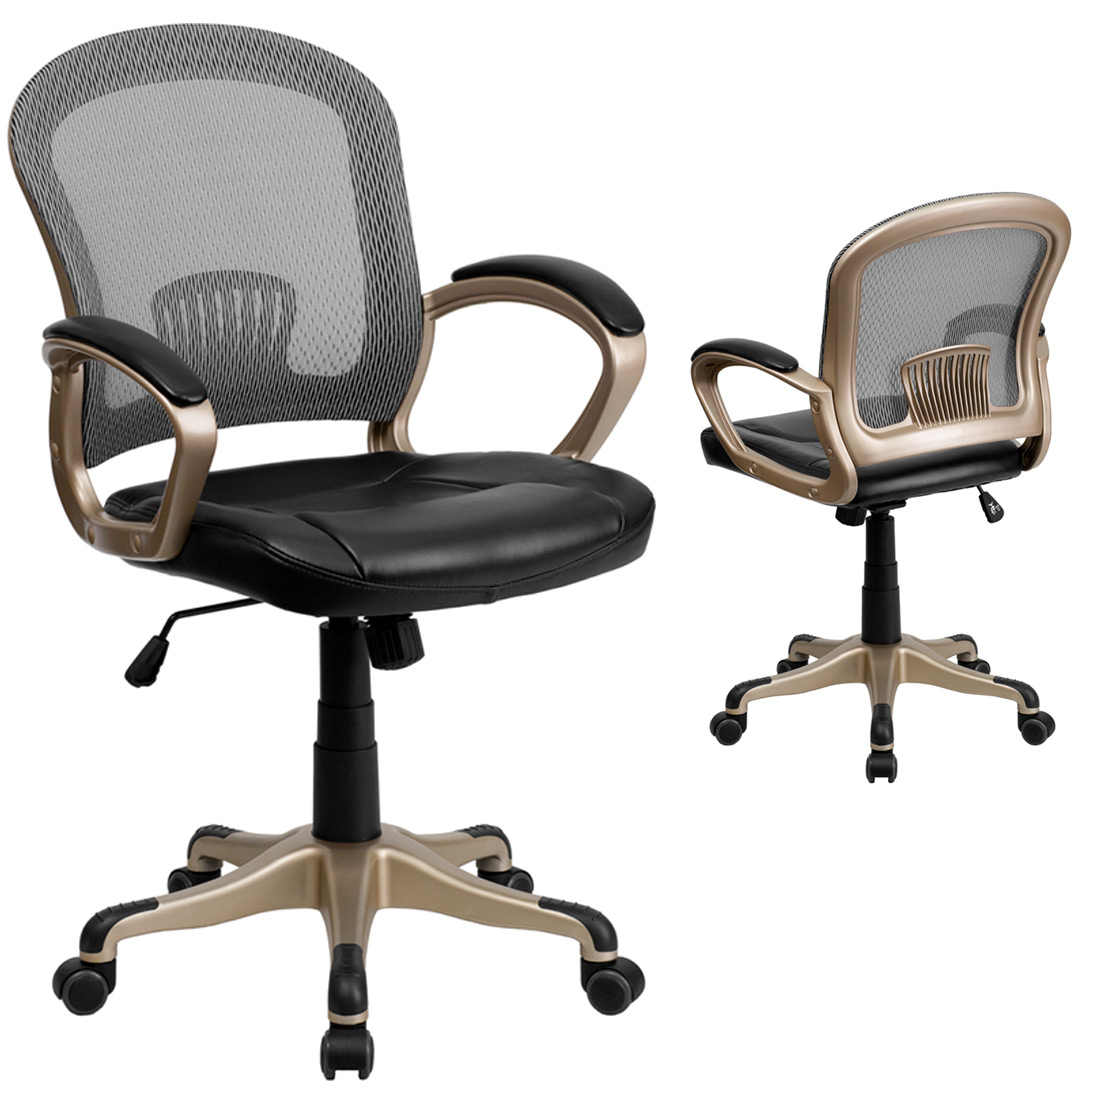 MidBack Mesh Office Chair with Black Leather Seat by